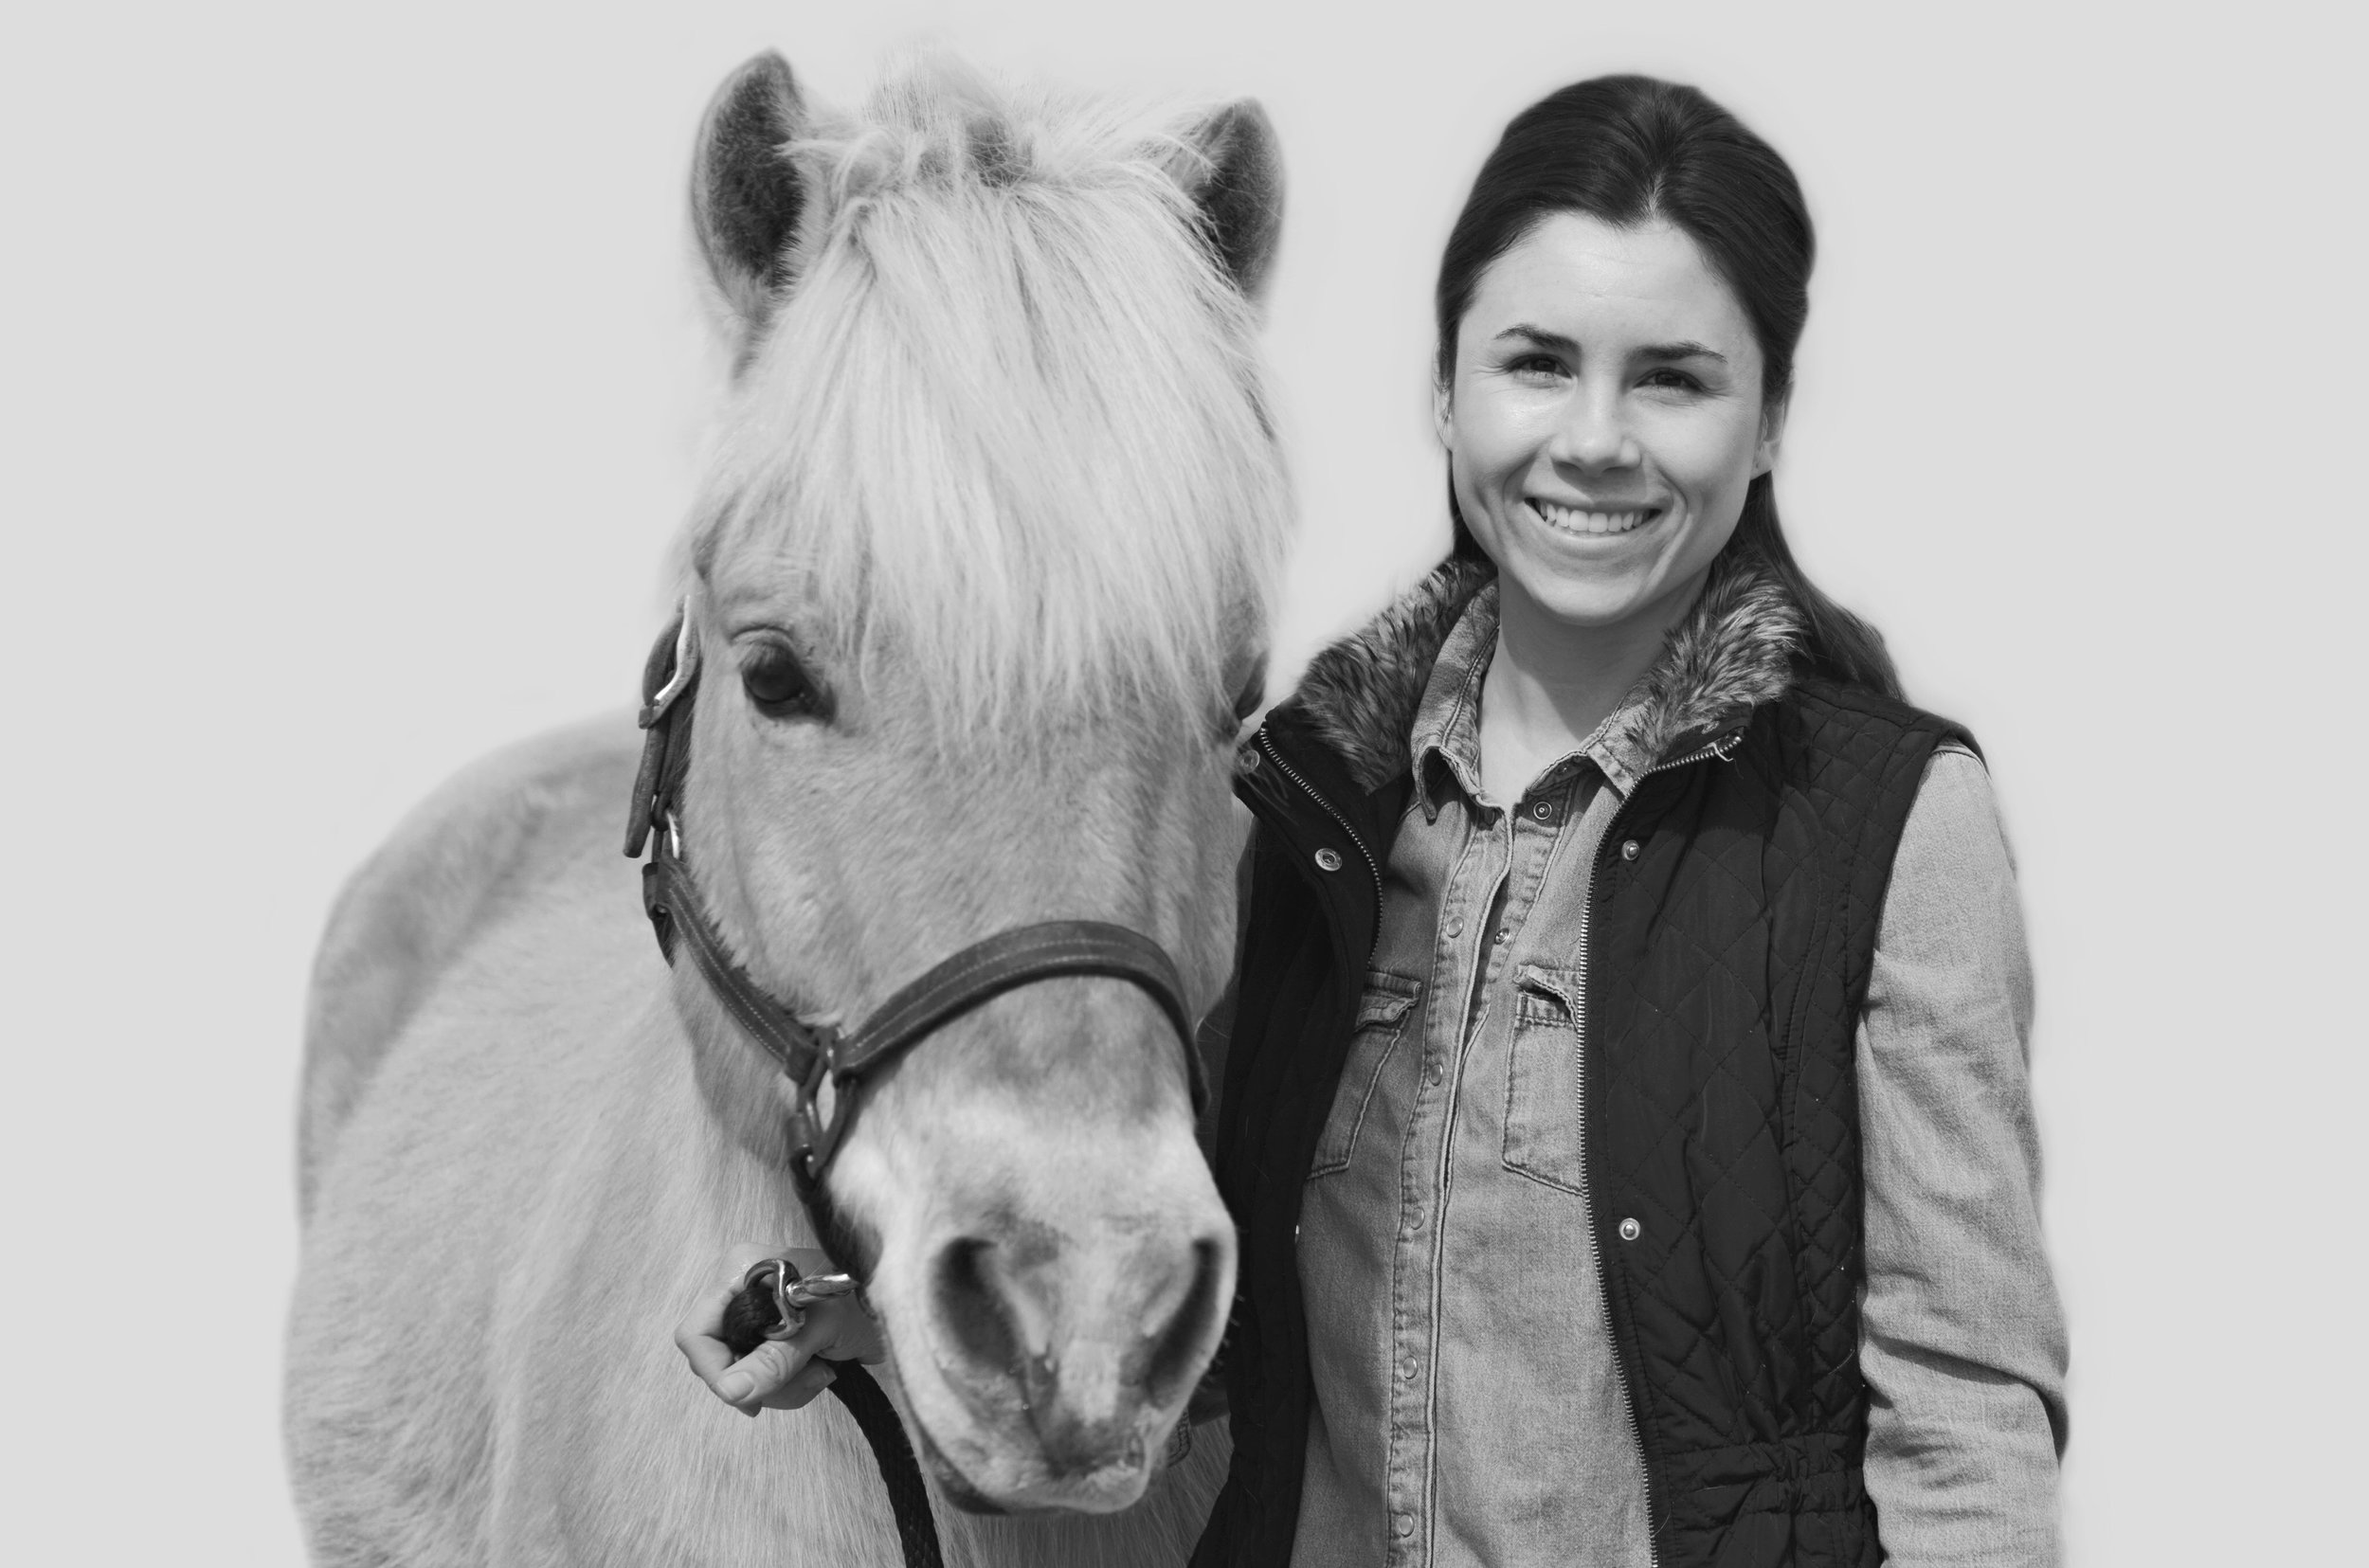 Kristin's love for horses started at a young age. Most of her free time was spent riding, teaching lessons, and volunteering with her stable's therapeutic riding program. She earned her bachelor's in equine business from Delaware Valley College. After college, Kristin worked in the corporate world for several years, but always felt that something was missing. She started at Pony Power in the spring of 2019 and is loving her time here working with the horses and the volunteers.